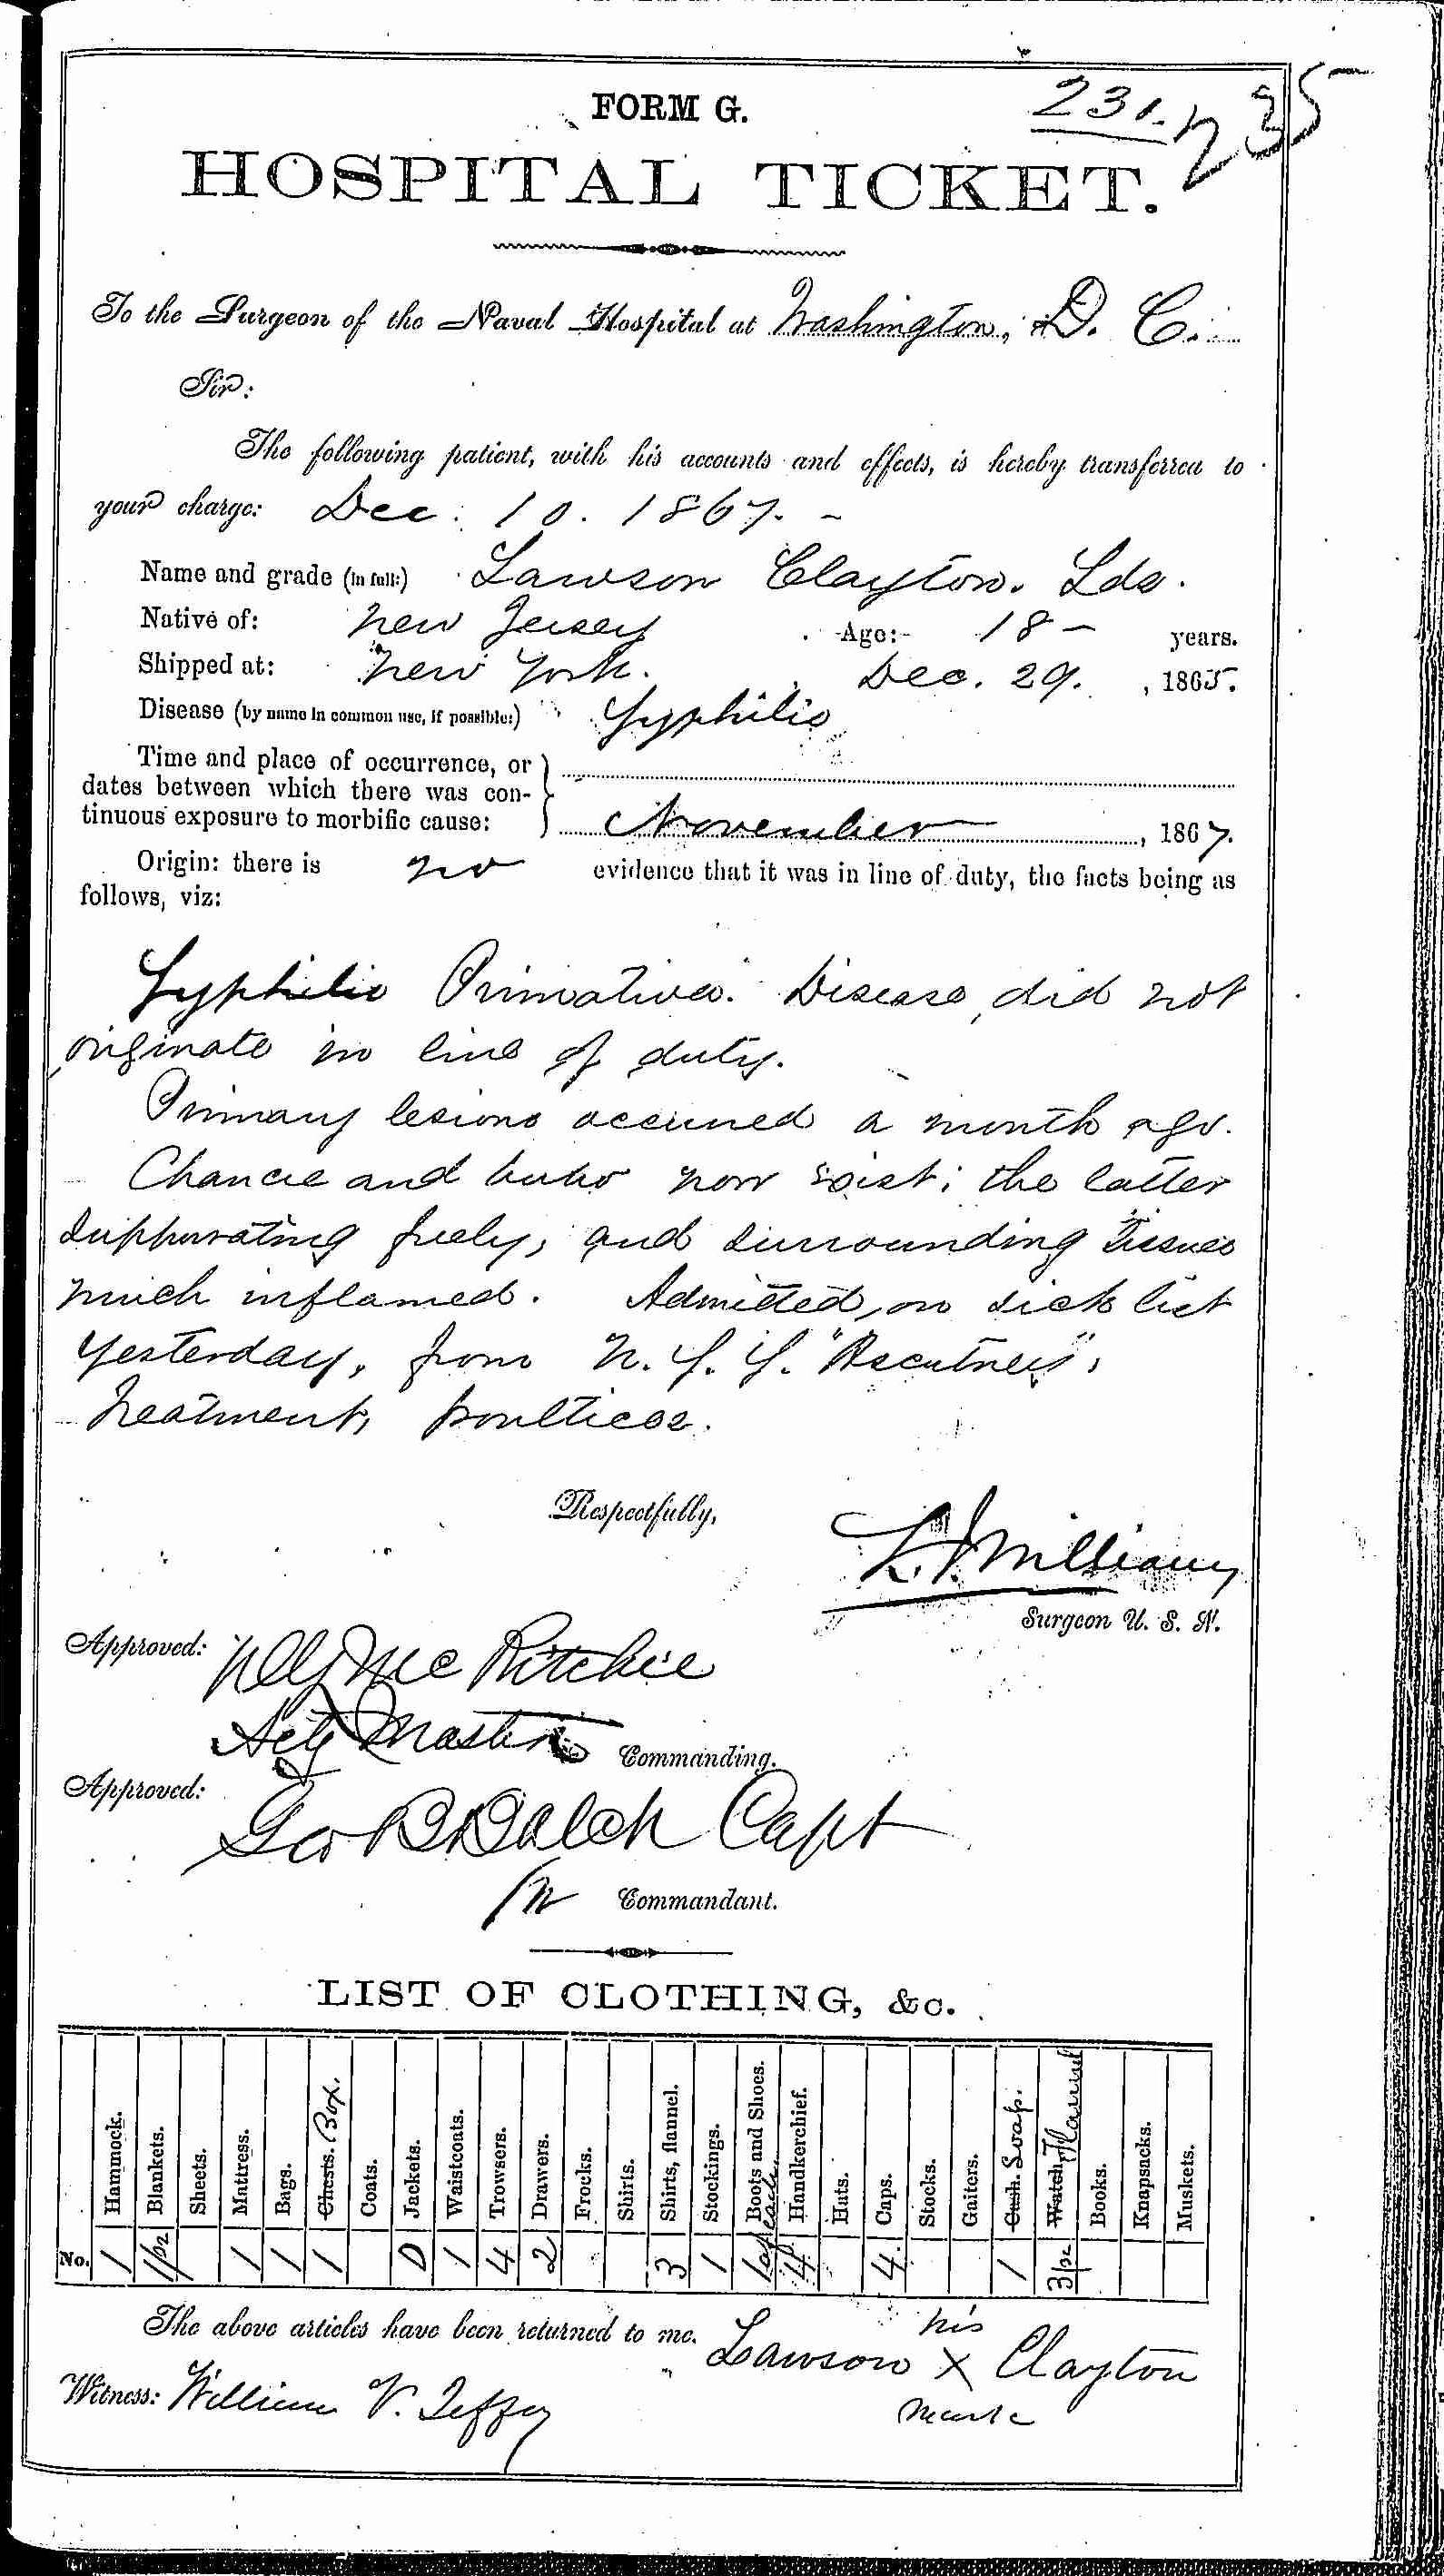 Entry for Lawson Clayton (page 1 of 2) in the log Hospital Tickets and Case Papers - Naval Hospital - Washington, D.C. - 1866-68